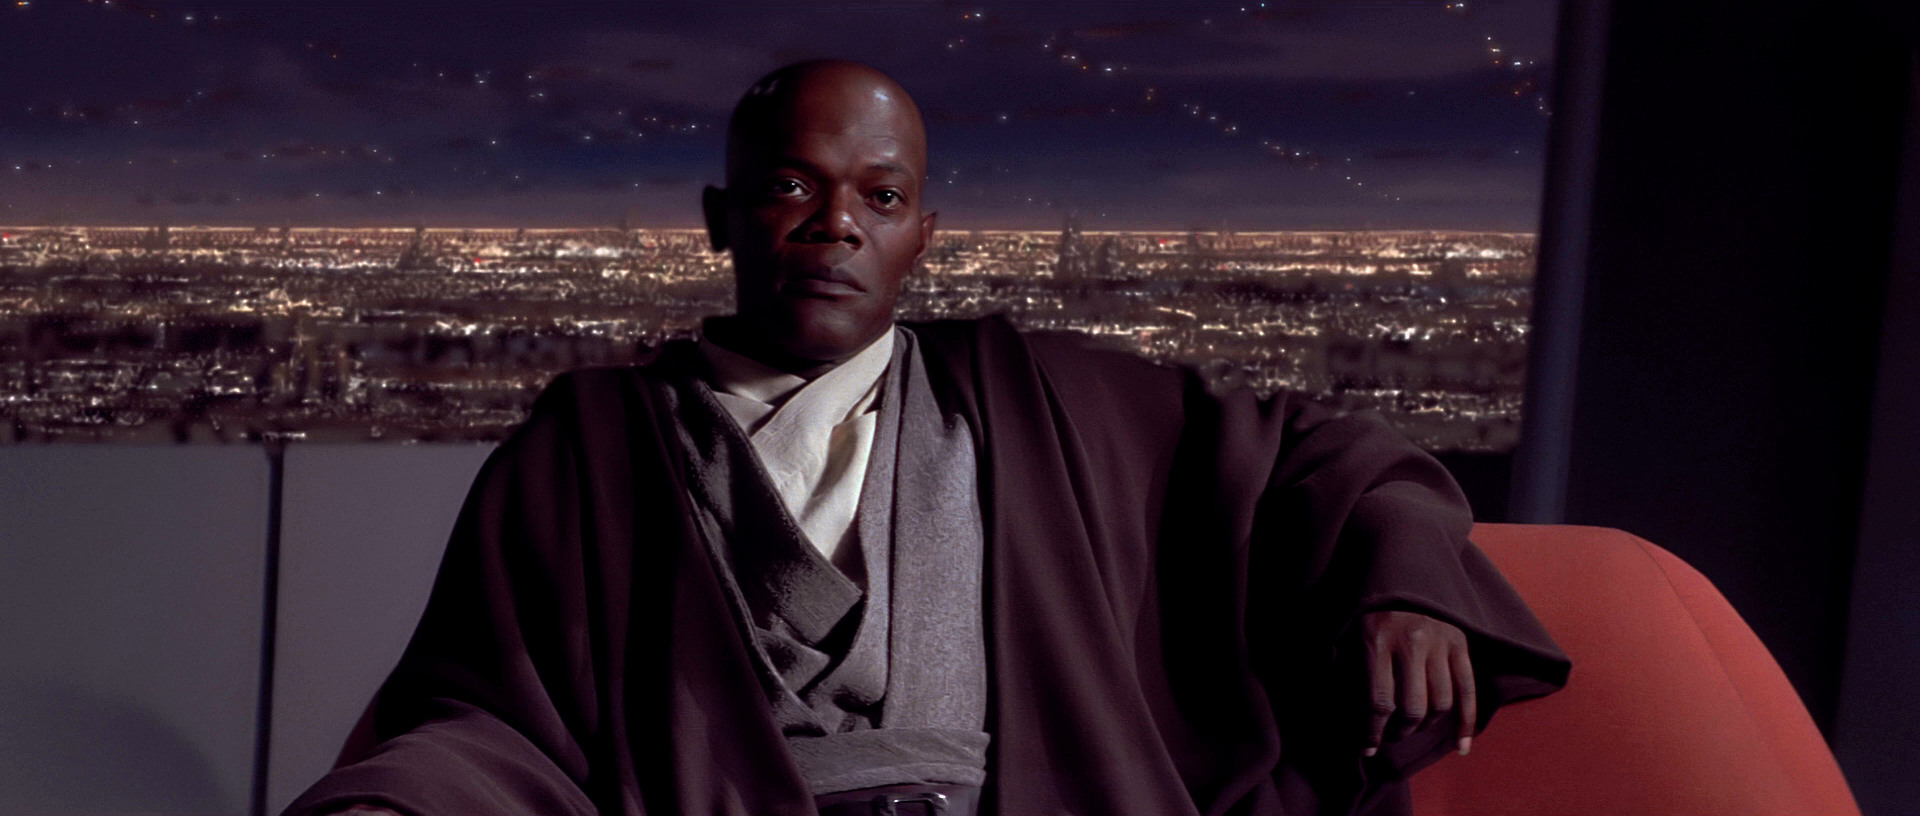 Mace_Windu_Jedi_Council_TPM.png